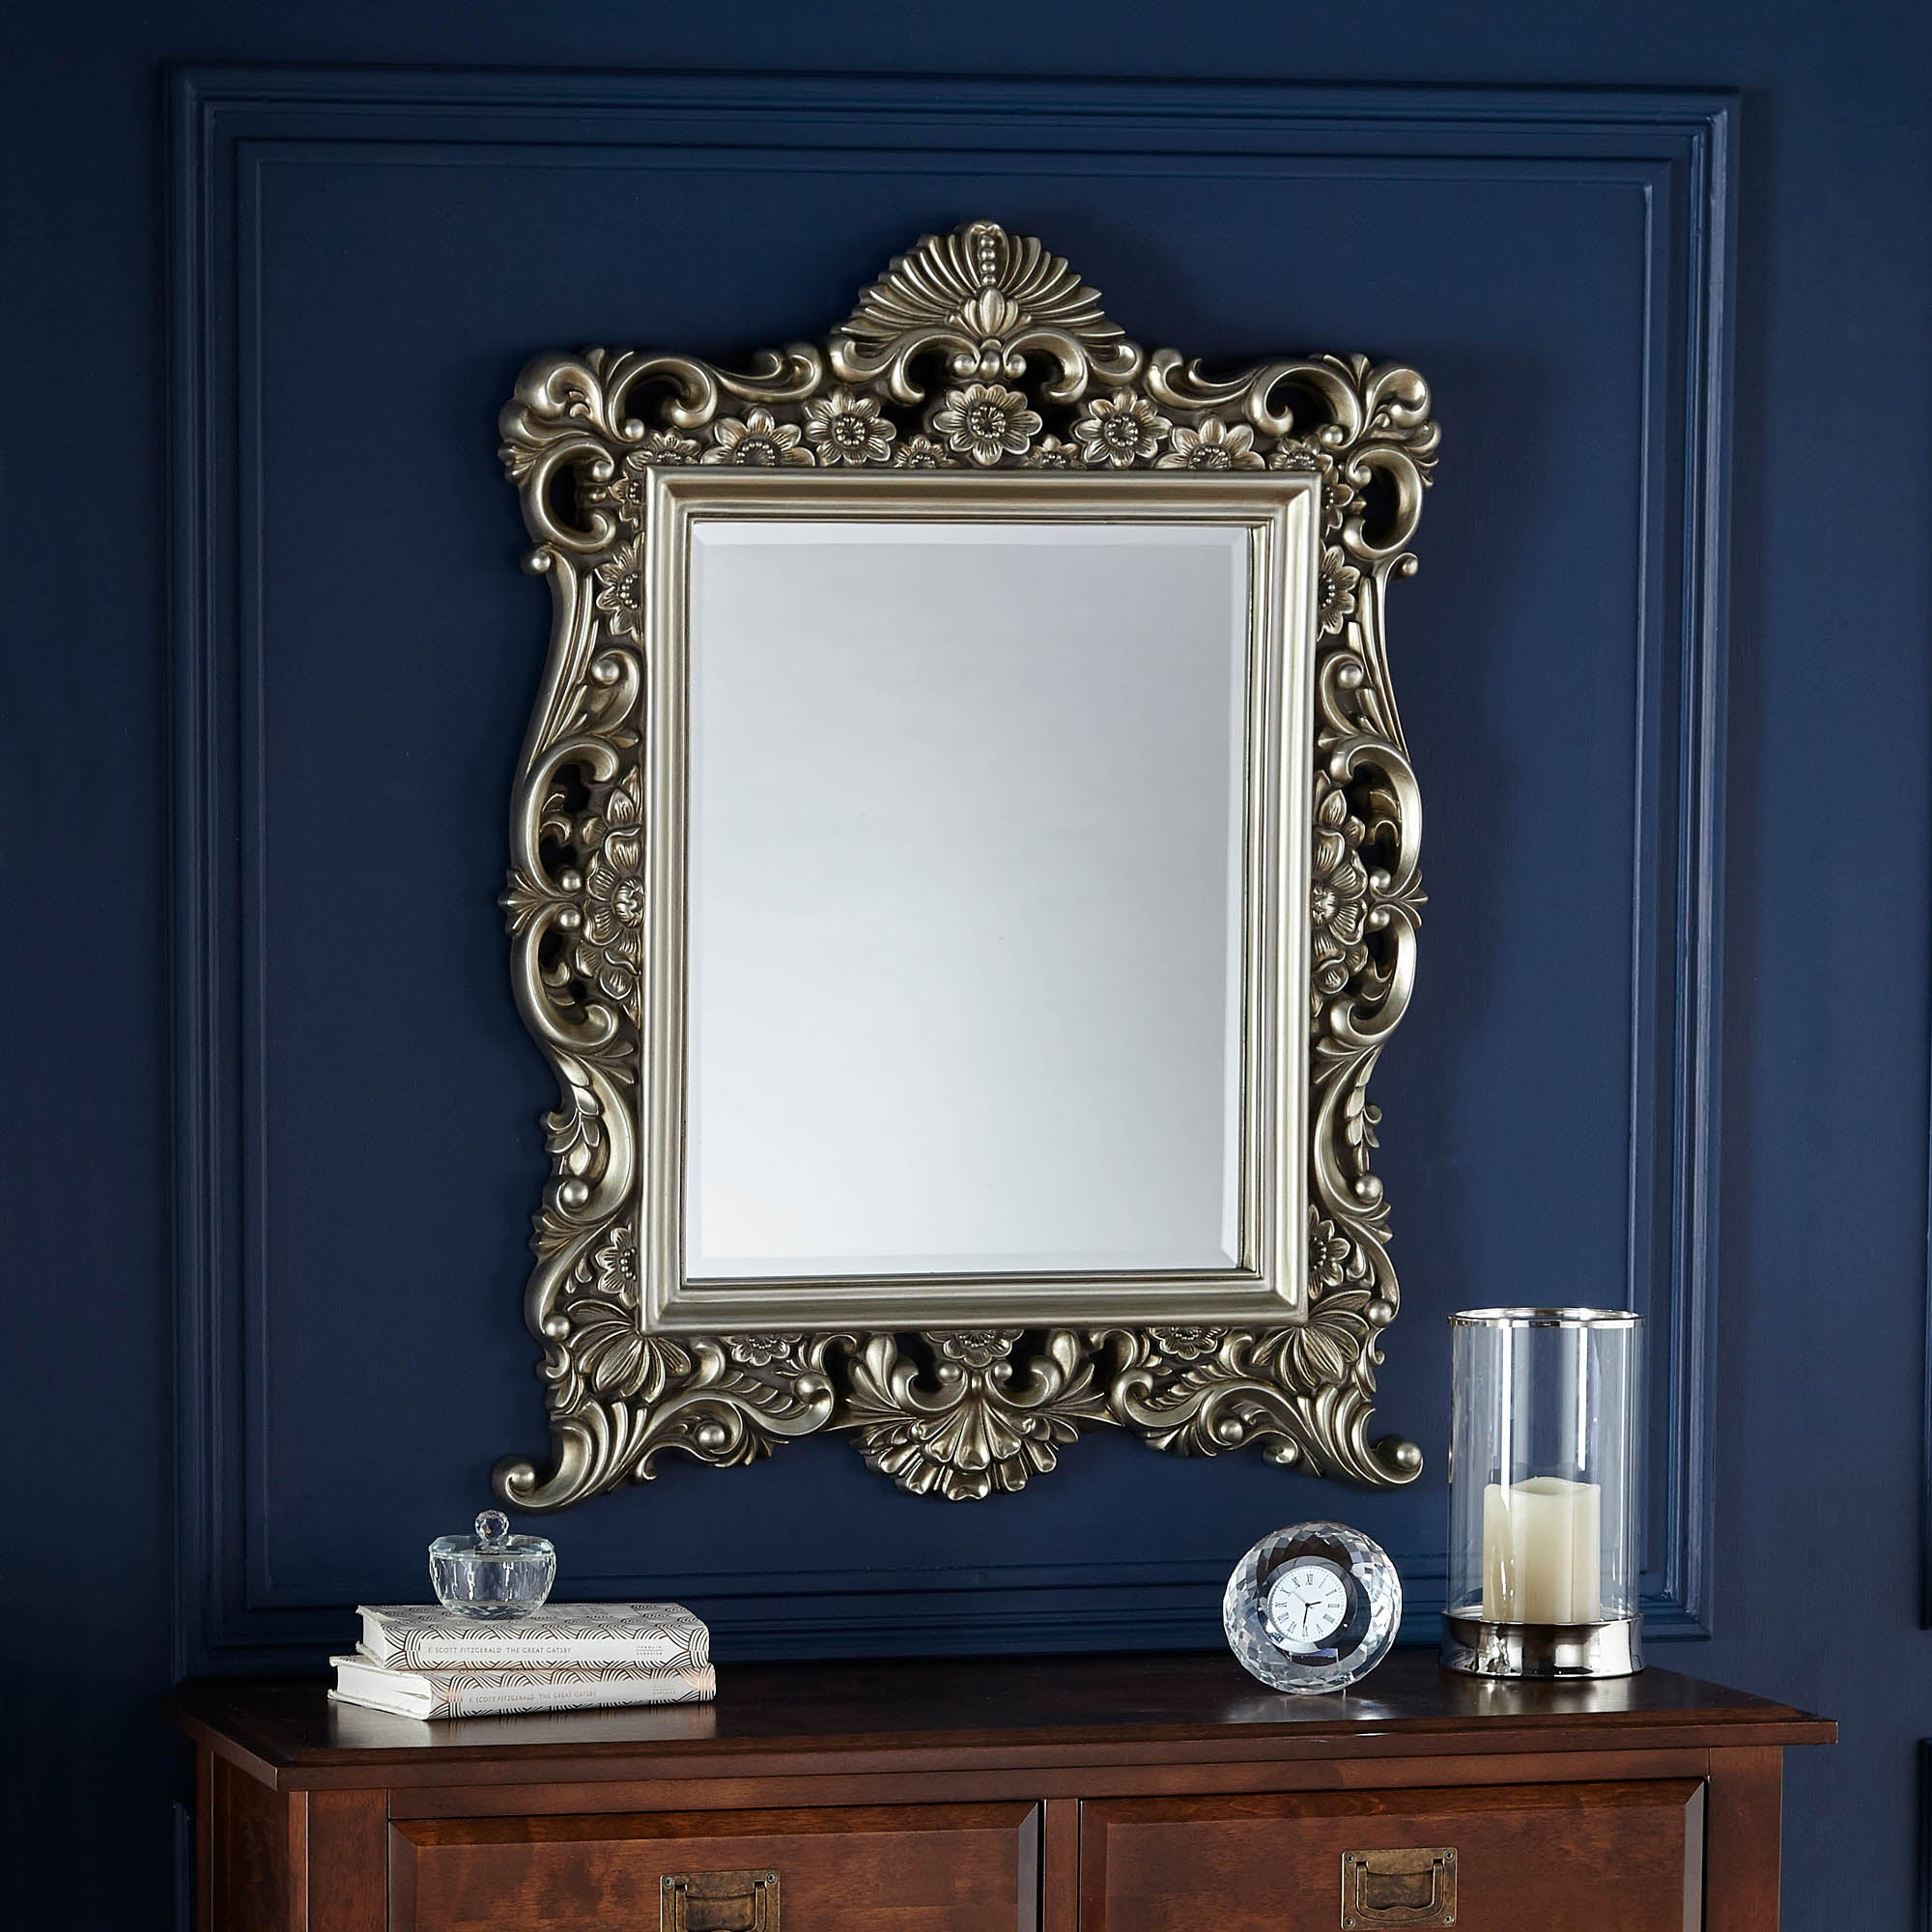 Silver Ornate Framed Mirror